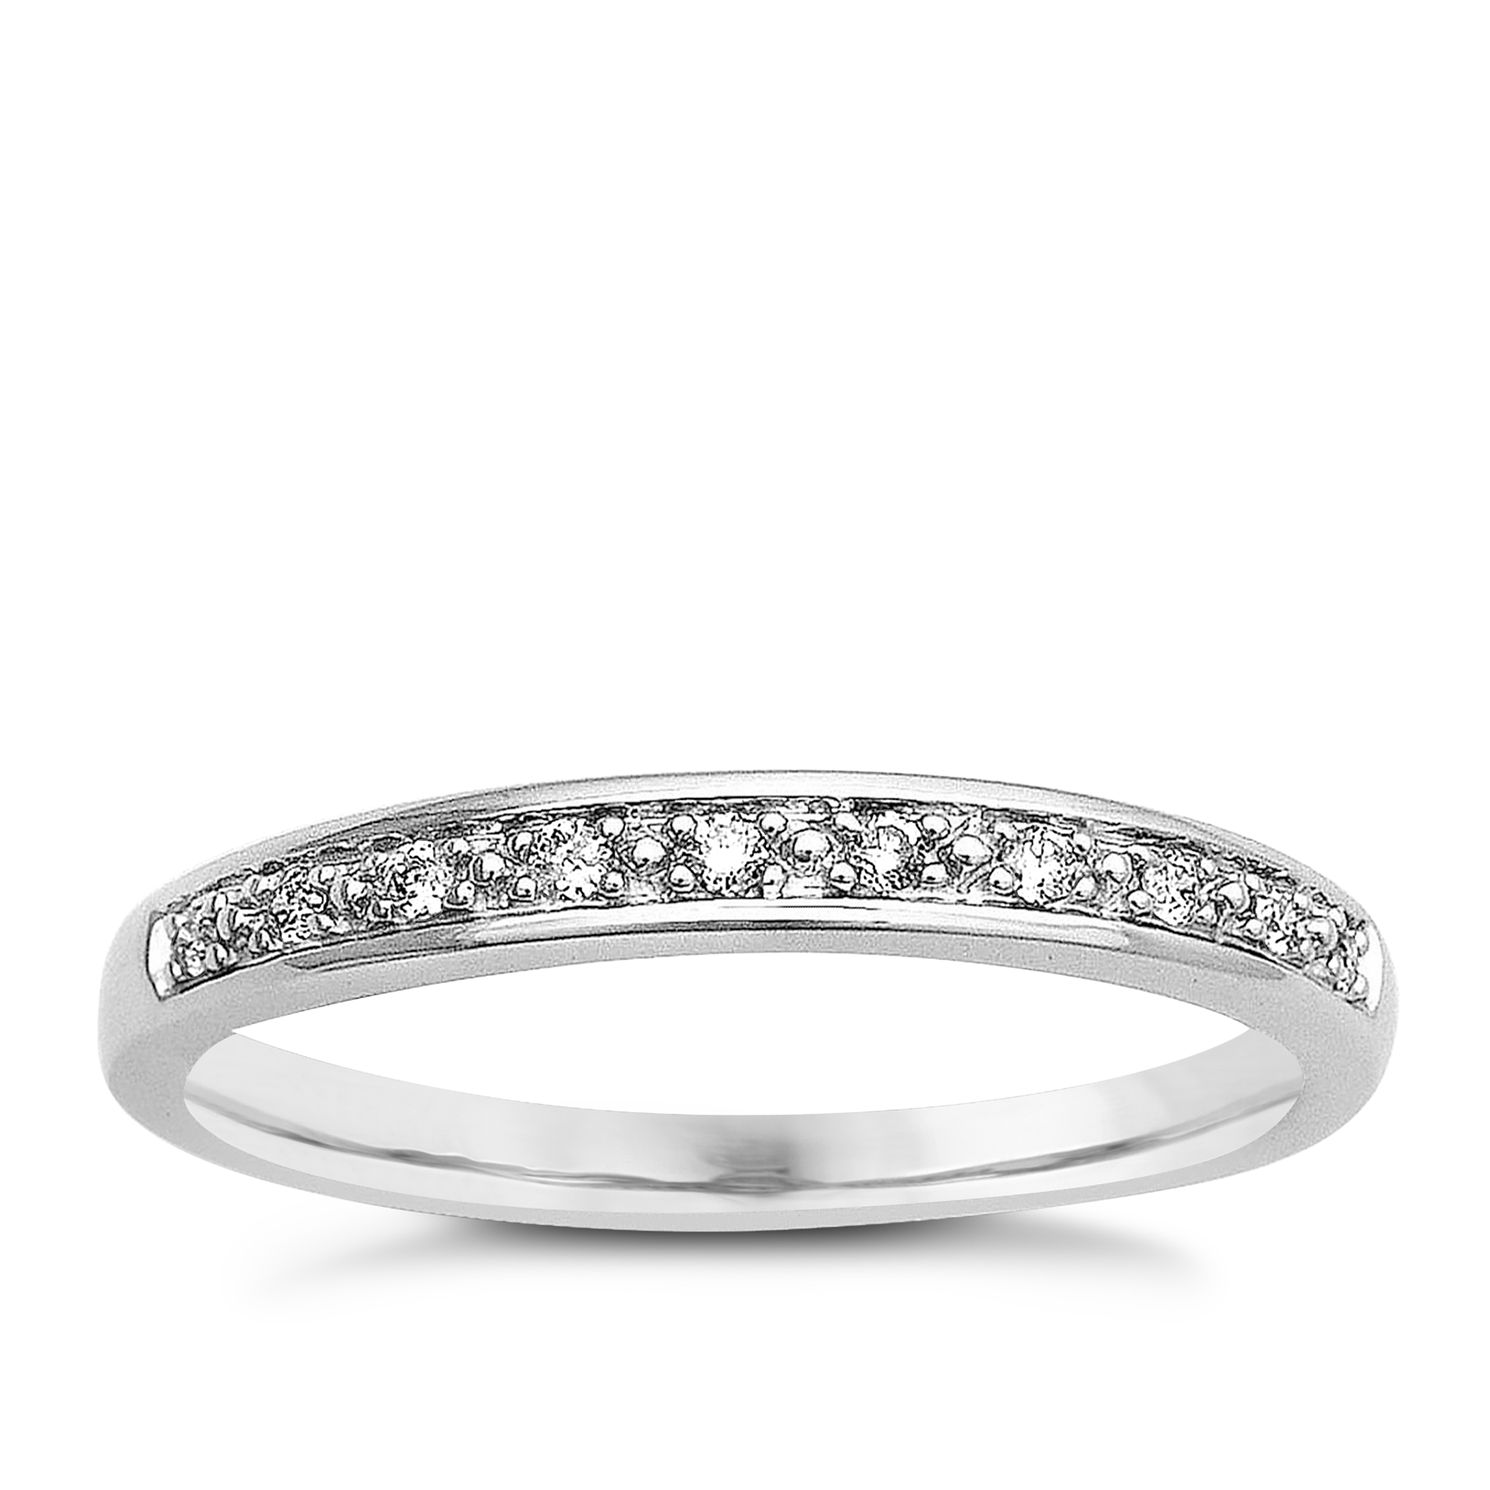 Perfect Fit 9ct White Gold & Diamond Eternity Ring - Product number 9439242